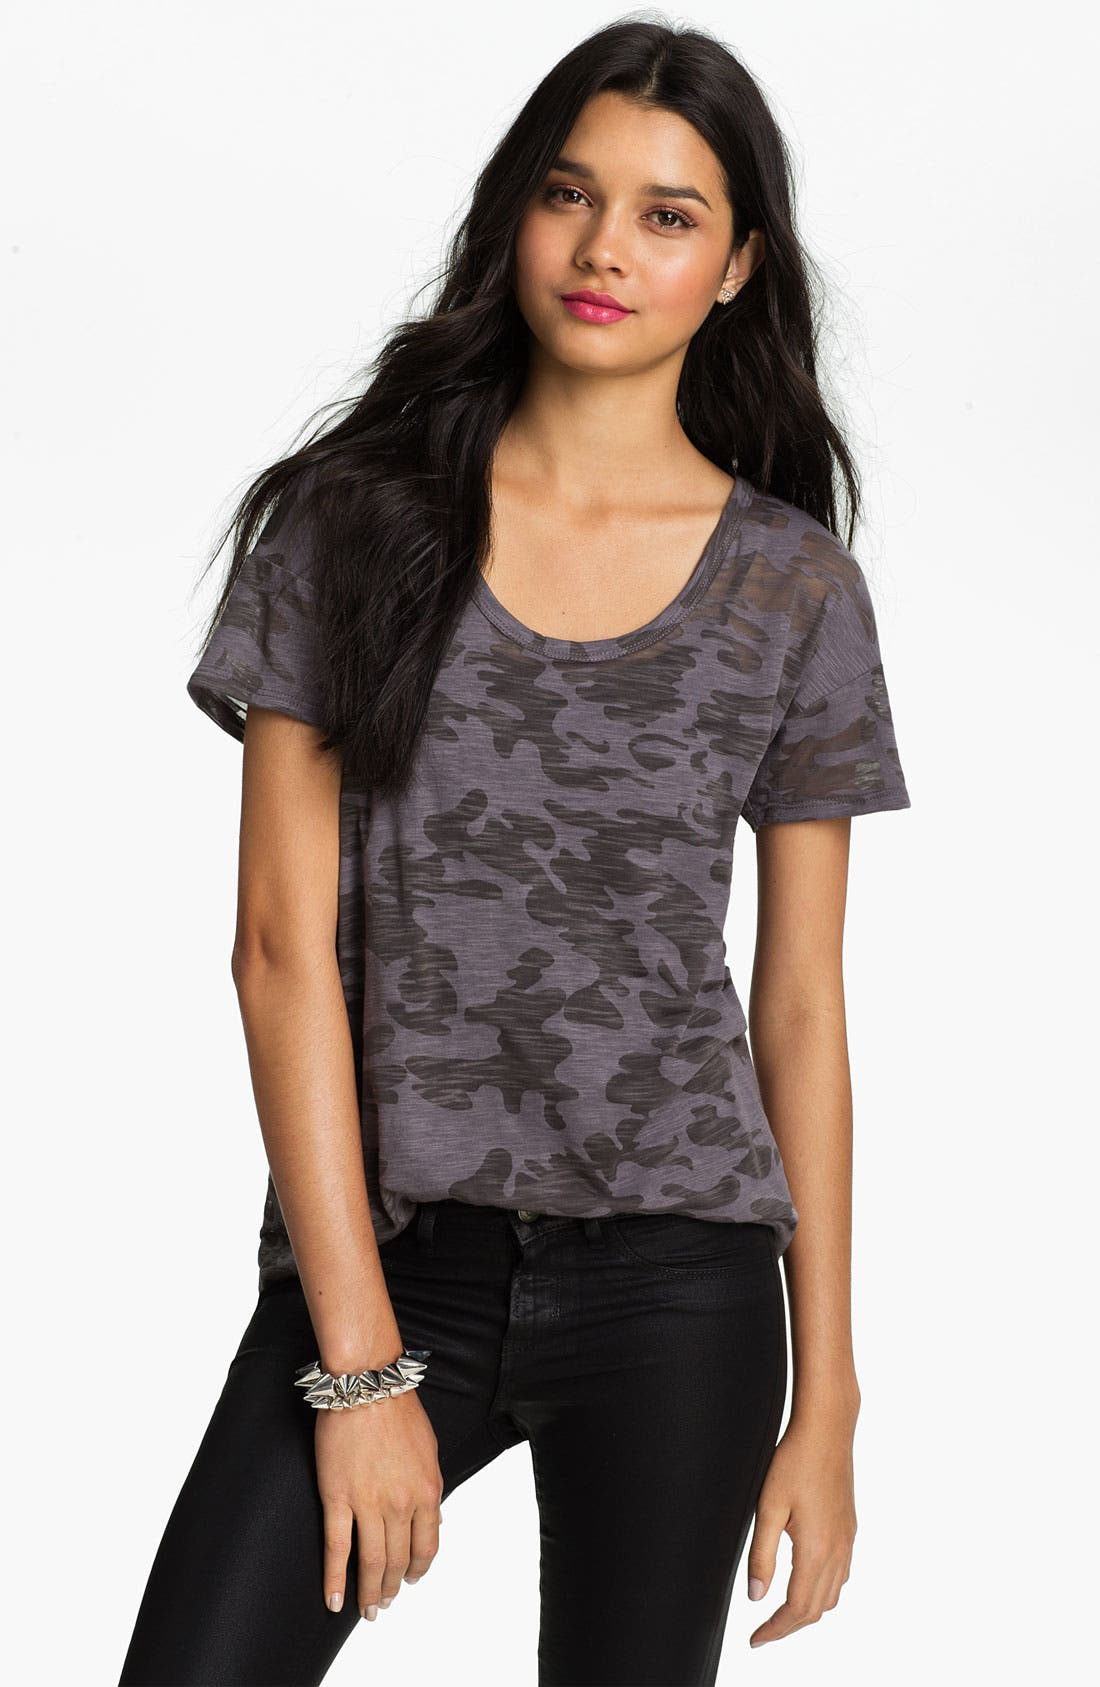 Alternate Image 1 Selected - Lush Clothing Camo Print Boyfriend Tee (Juniors)